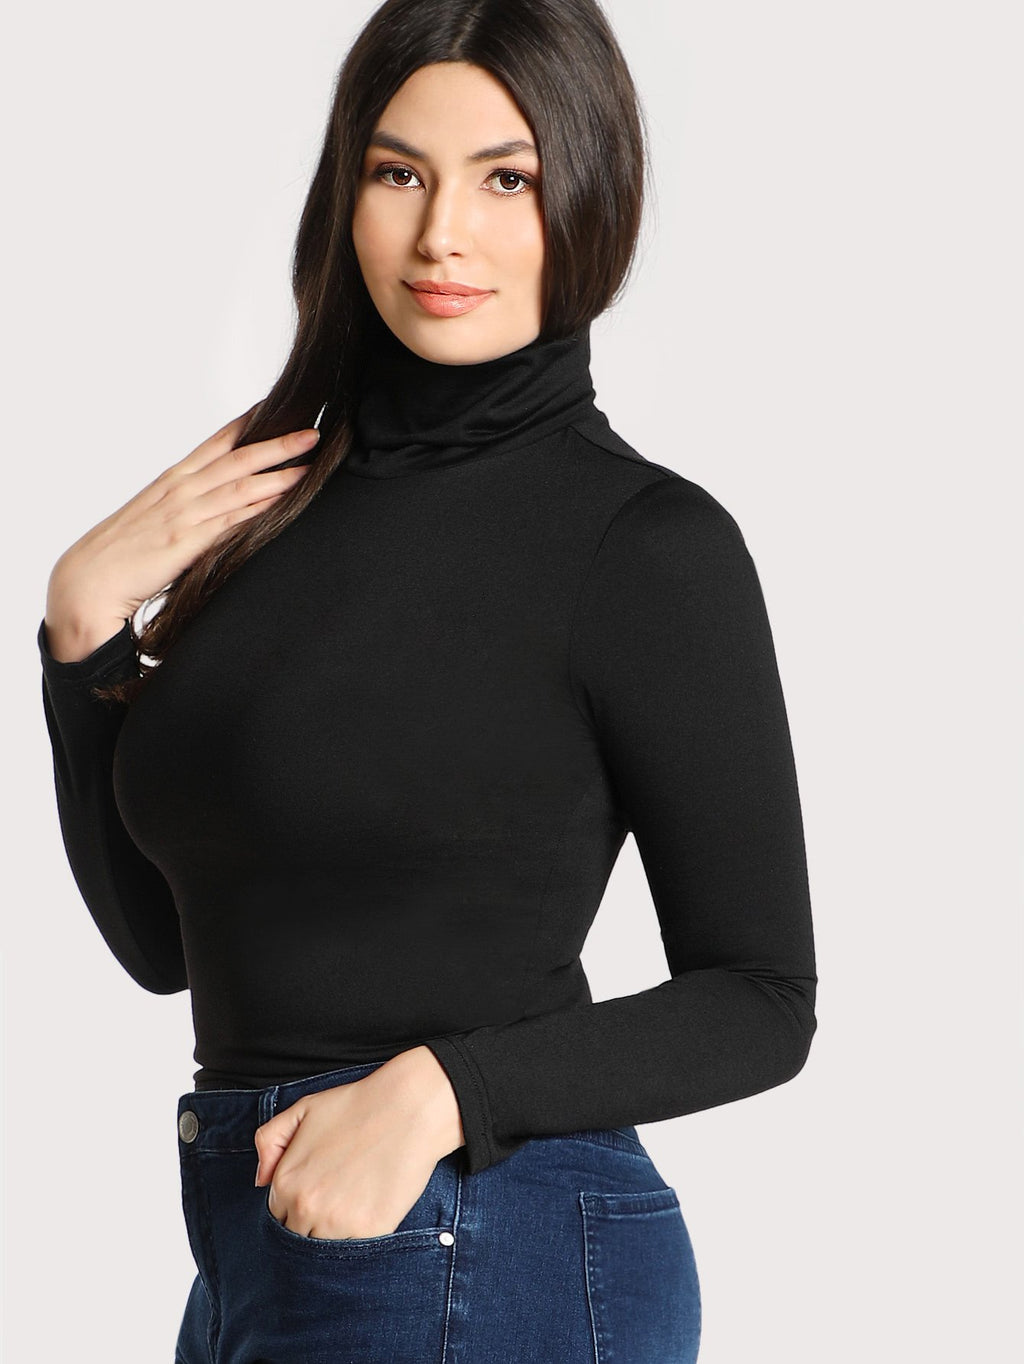 Plus Size Classy Turtleneck Solid Skinny Top